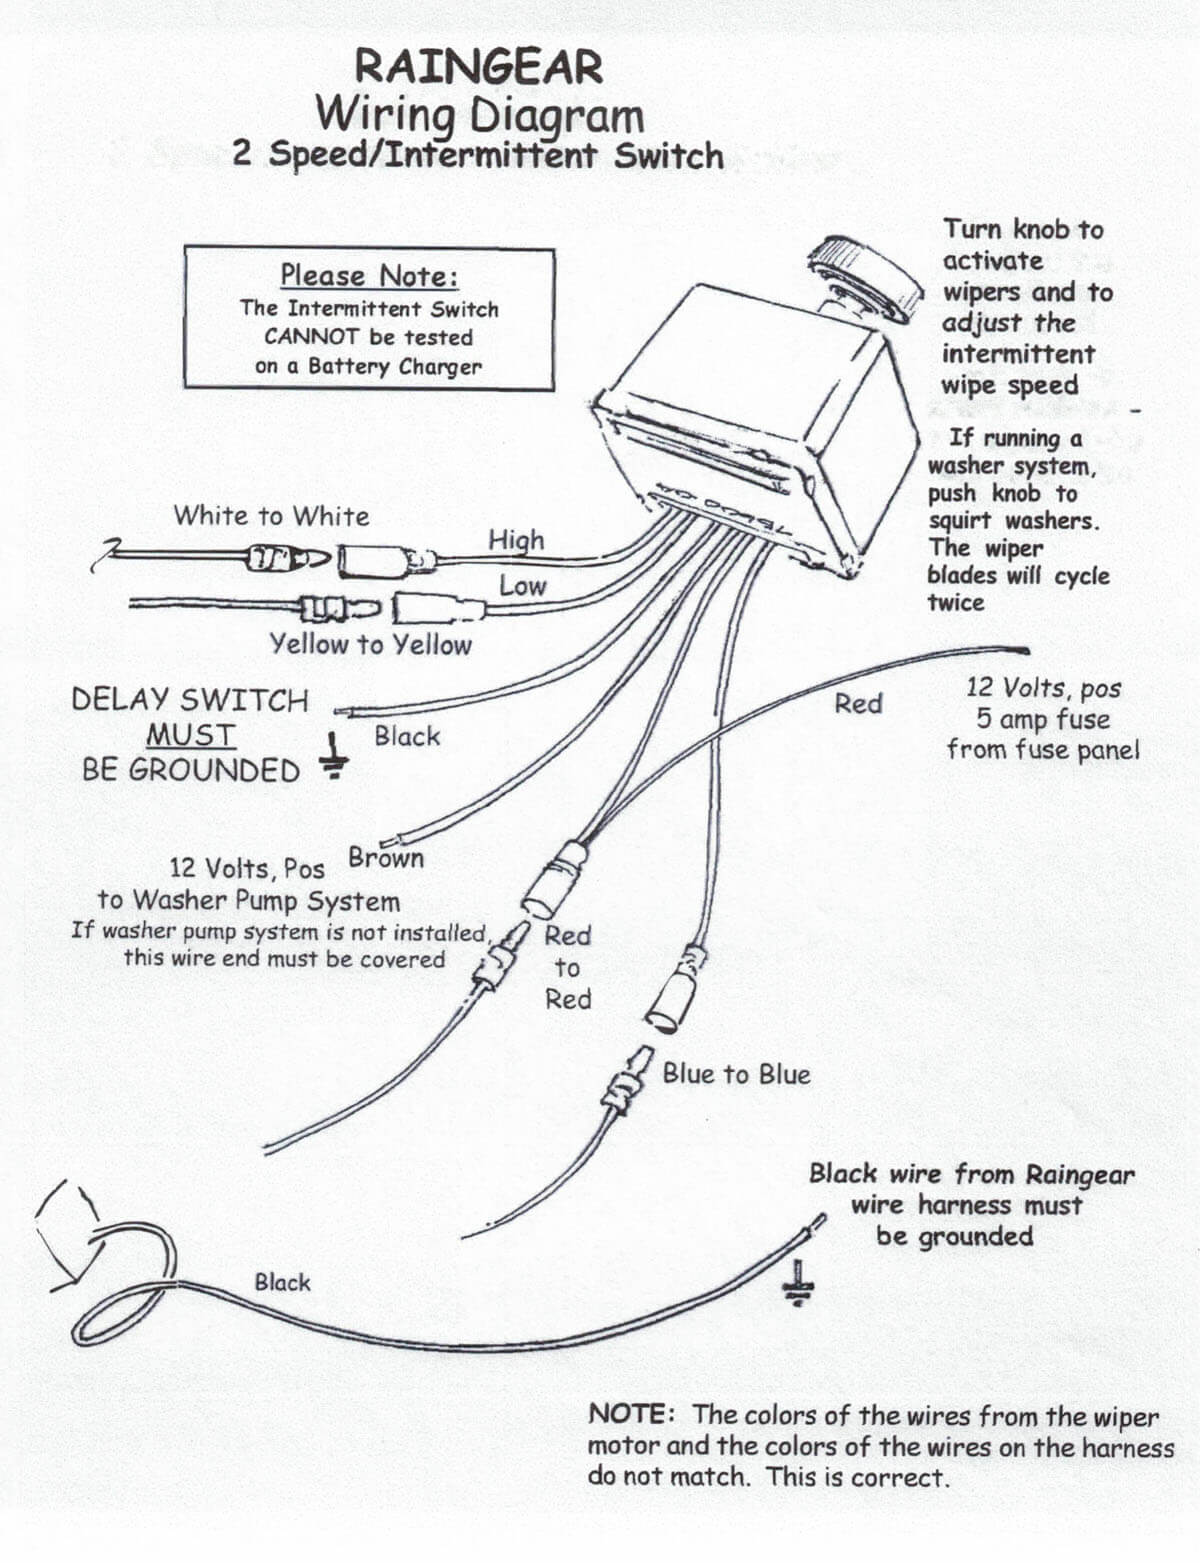 Wiring Diagram Raingear Wiper Systems 2 Line Phone Download